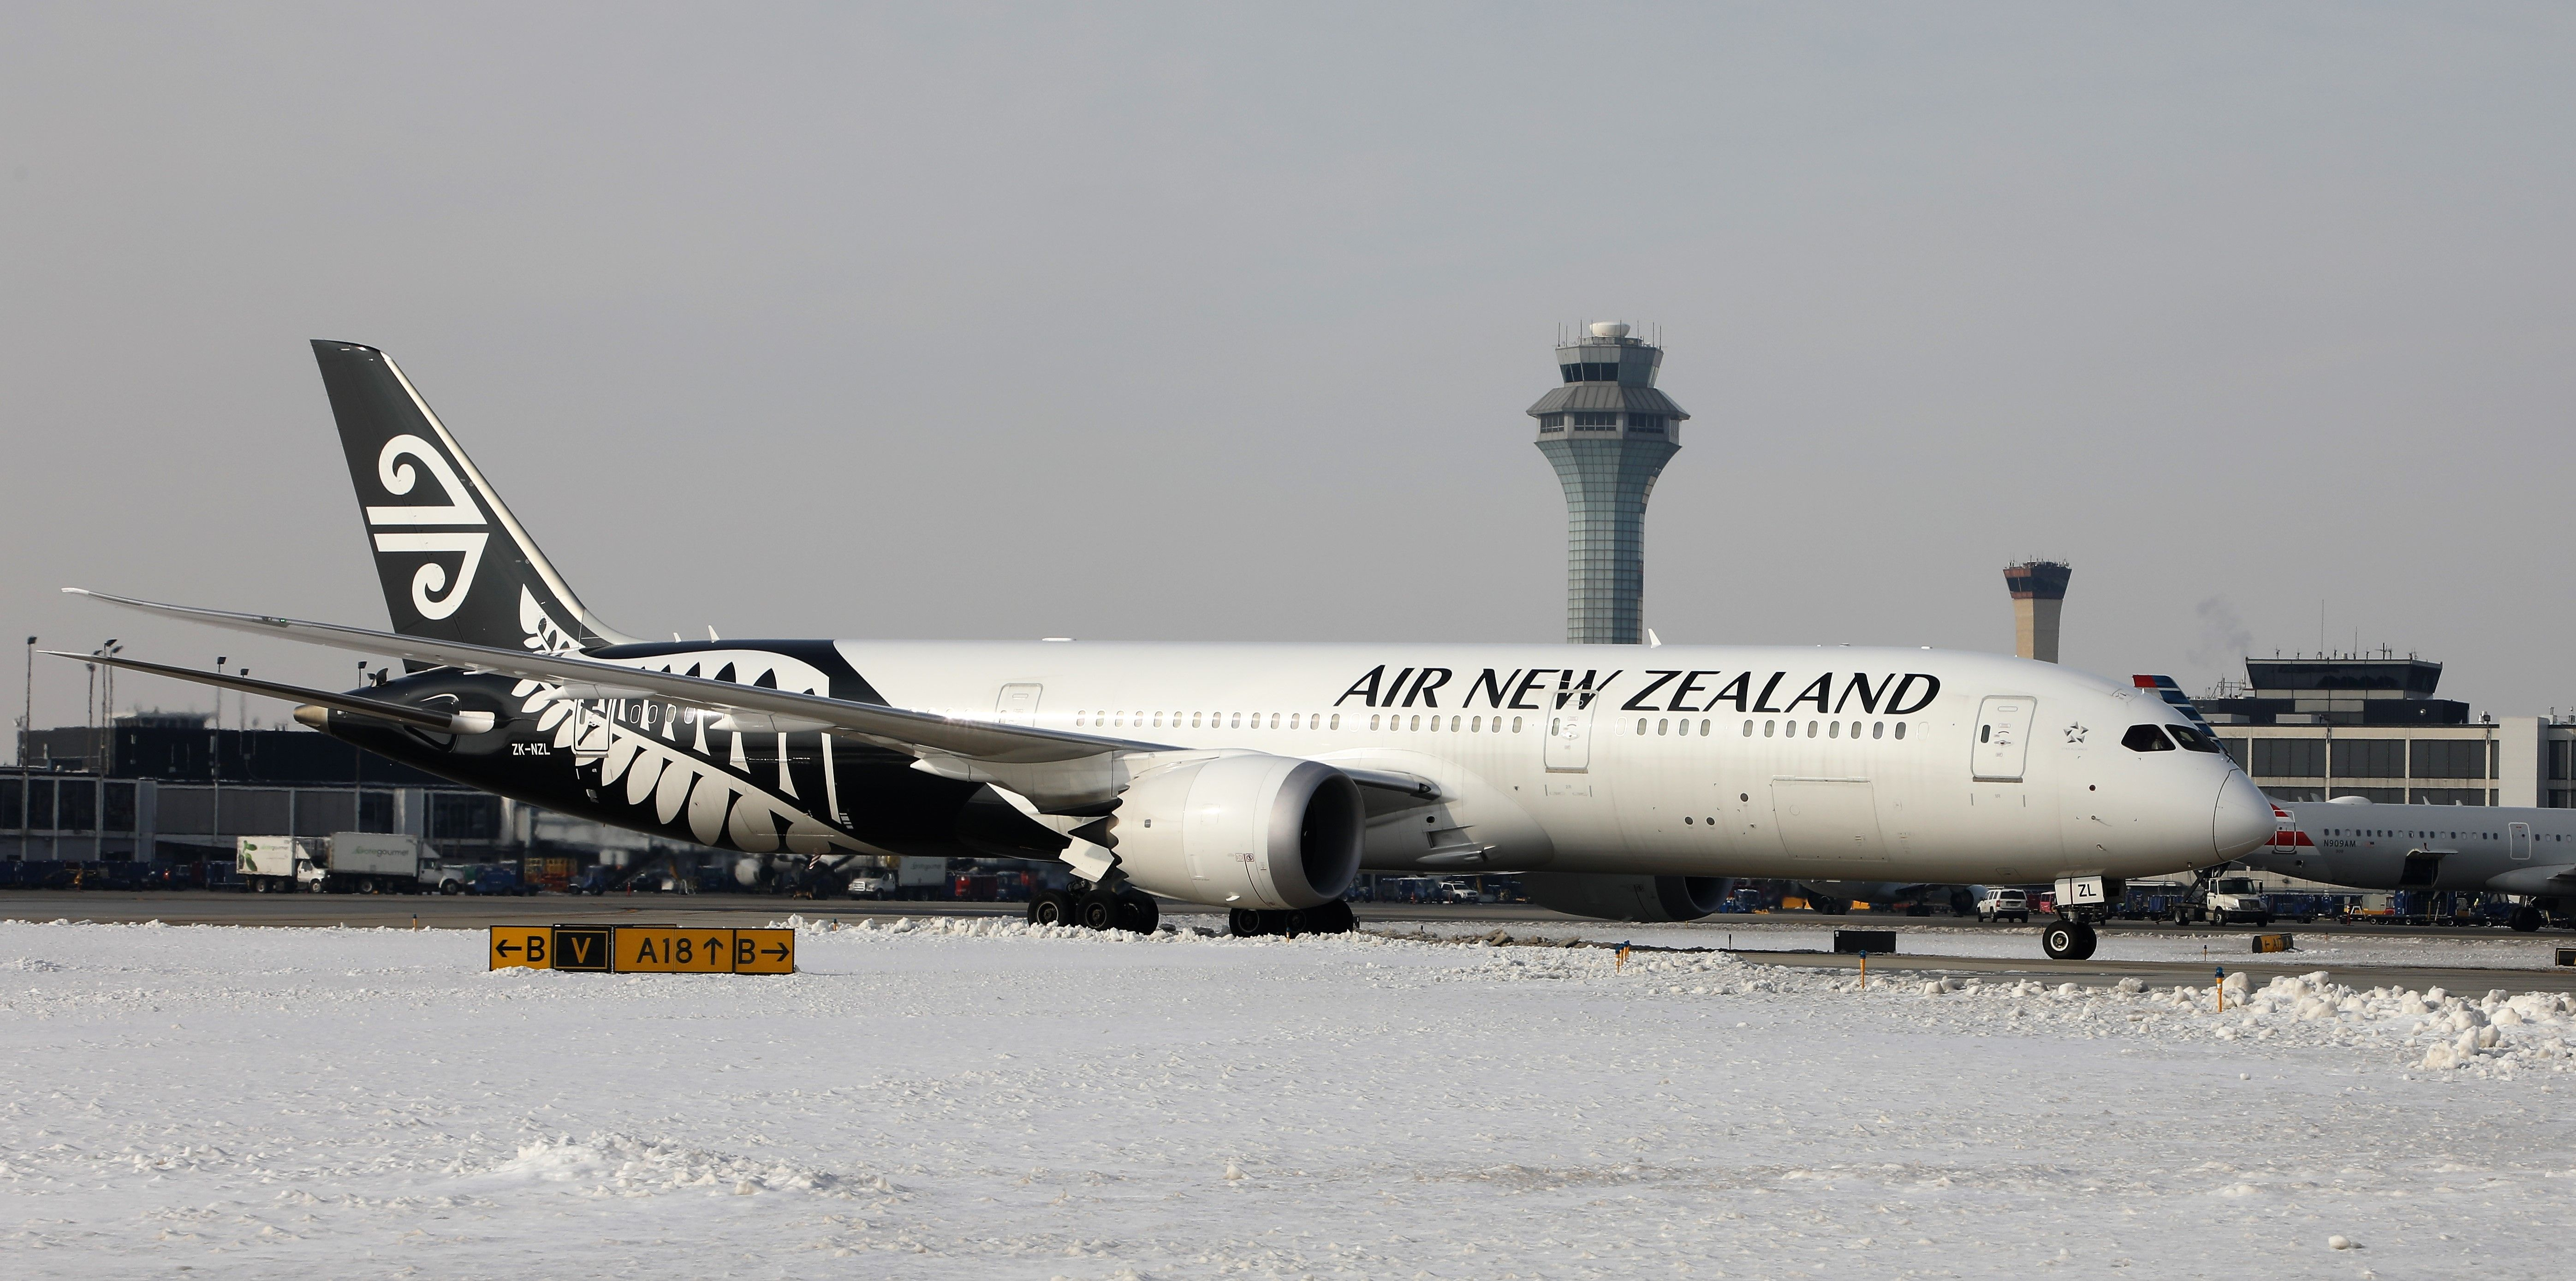 Cda Welcomes Inaugural Air New Zealand Flight From Auckland To